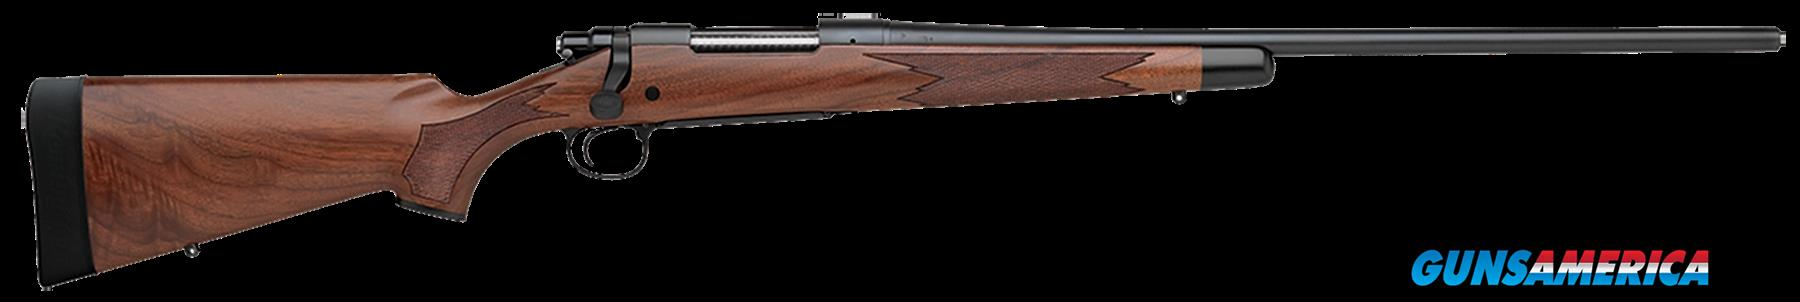 "Remington Firearms 27009 700 CDL Bolt 25-06 Rem 24"" 4+1 American Walnut Stk Blued  Guns > Rifles > R Misc Rifles"